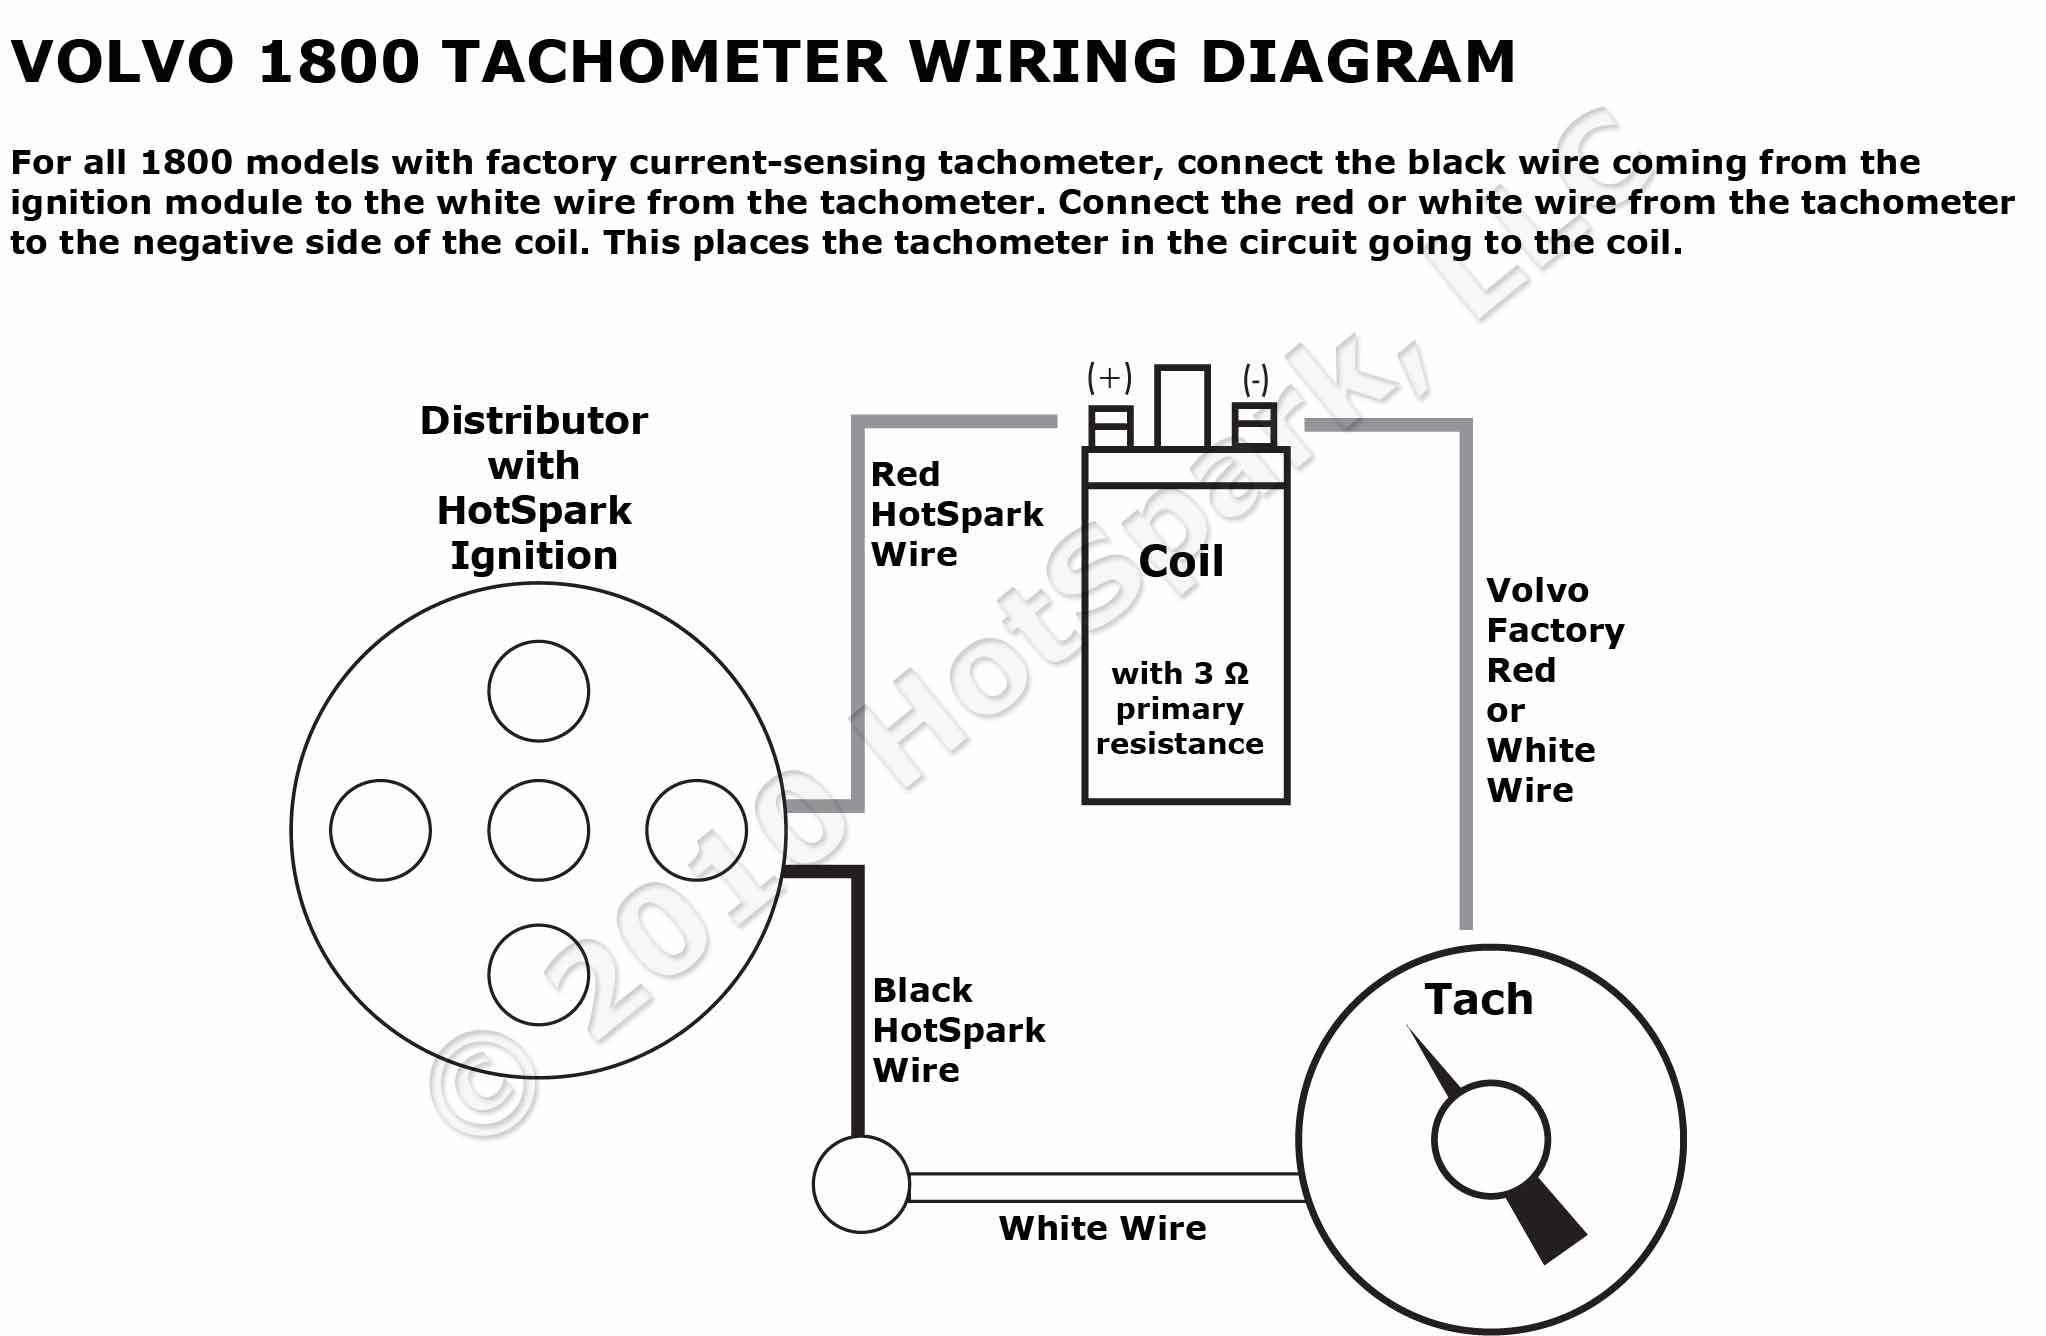 Volvo 1800 Tachometer and Hot Spark Wiring Diagram tach wiring diagram autometer tach wiring diagram \u2022 wiring vintage stewart warner tachometer wiring diagram at panicattacktreatment.co